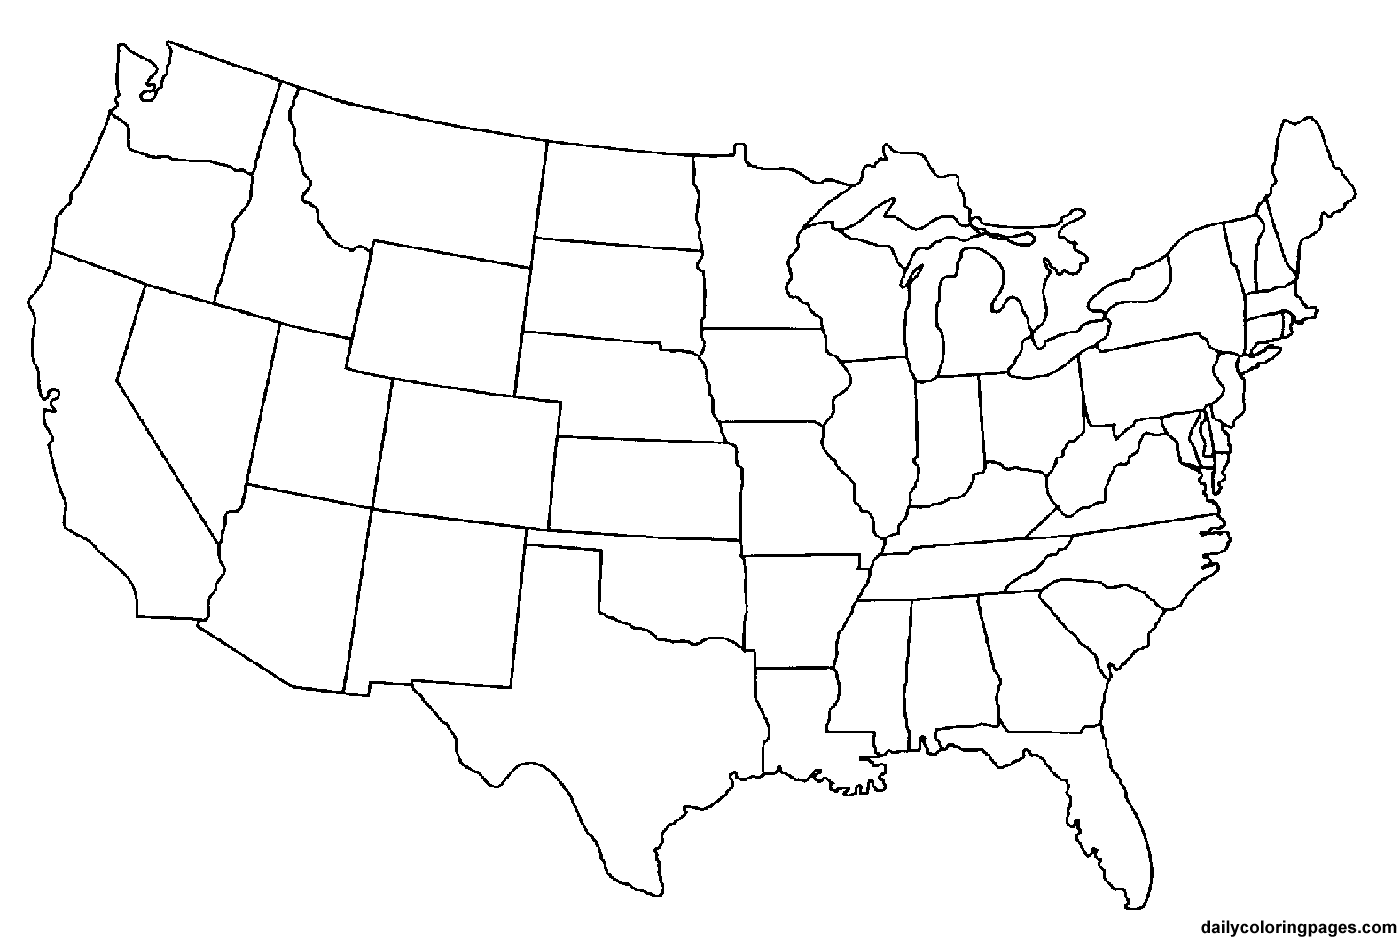 Coloring Without Lines besides Eloise in addition USPrintable together with Printable Blank Us Map With States as well 10 Way To Keep Kids Happy In The Car. on map of usa to fill in